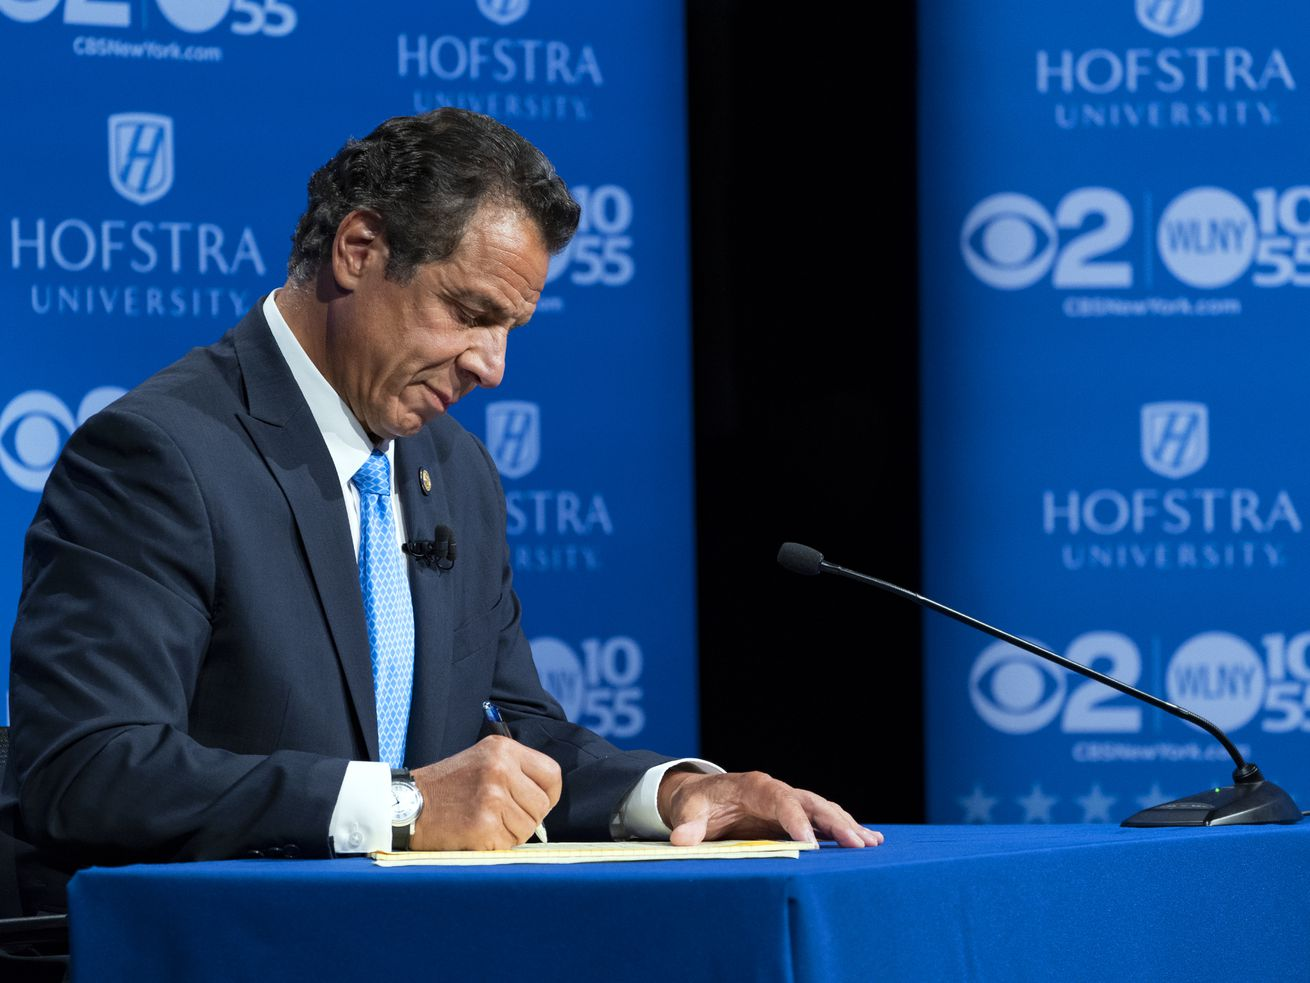 New York Gov. Andrew Cuomo takes notes during a primary debate with opponent Cynthia Nixon at Hofstra University on August 29, 2018.